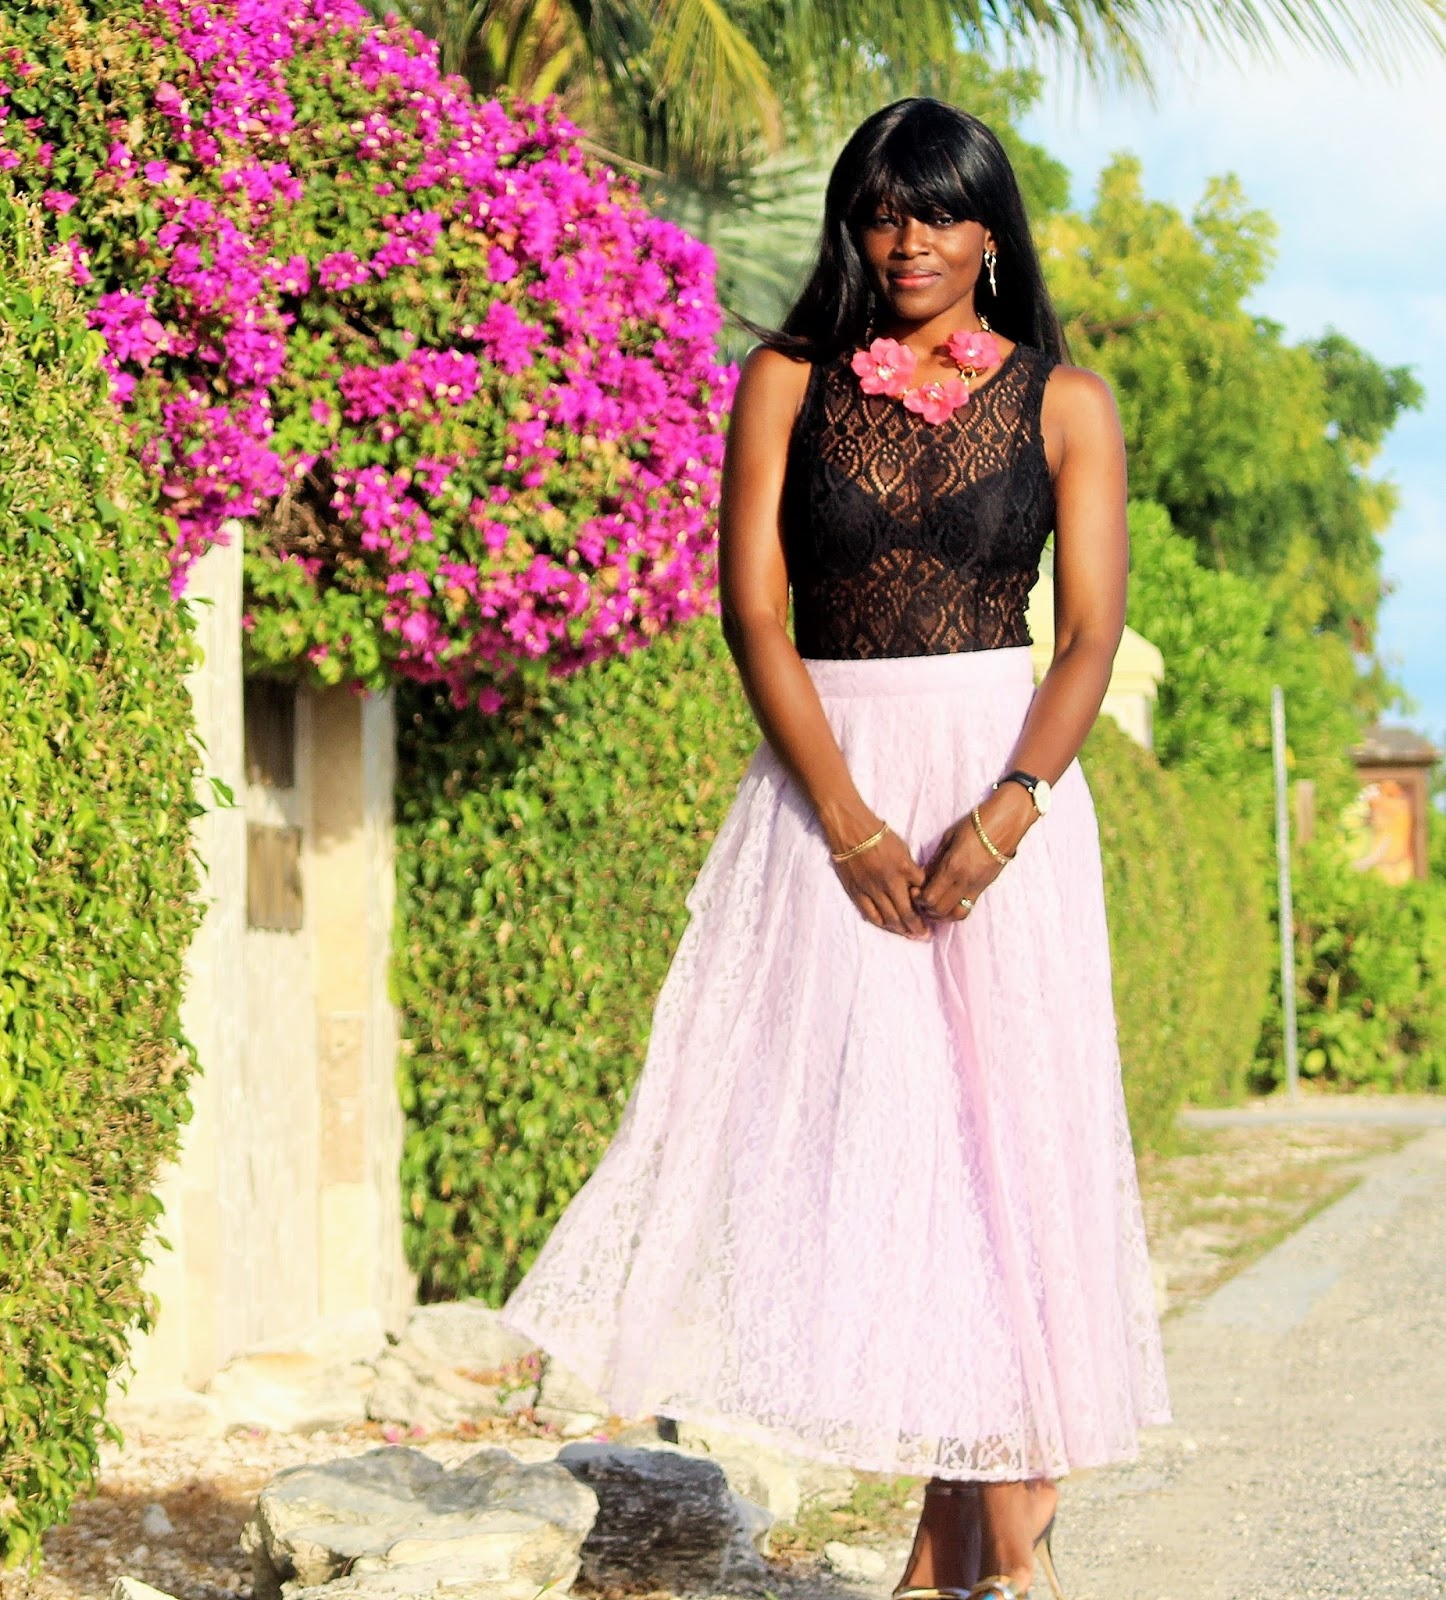 THE BEST OF MIDI SKIRTS: TULLE, LACE, FULL, PENCIL, FLORAL PRINTS, A-LINED & MORE....